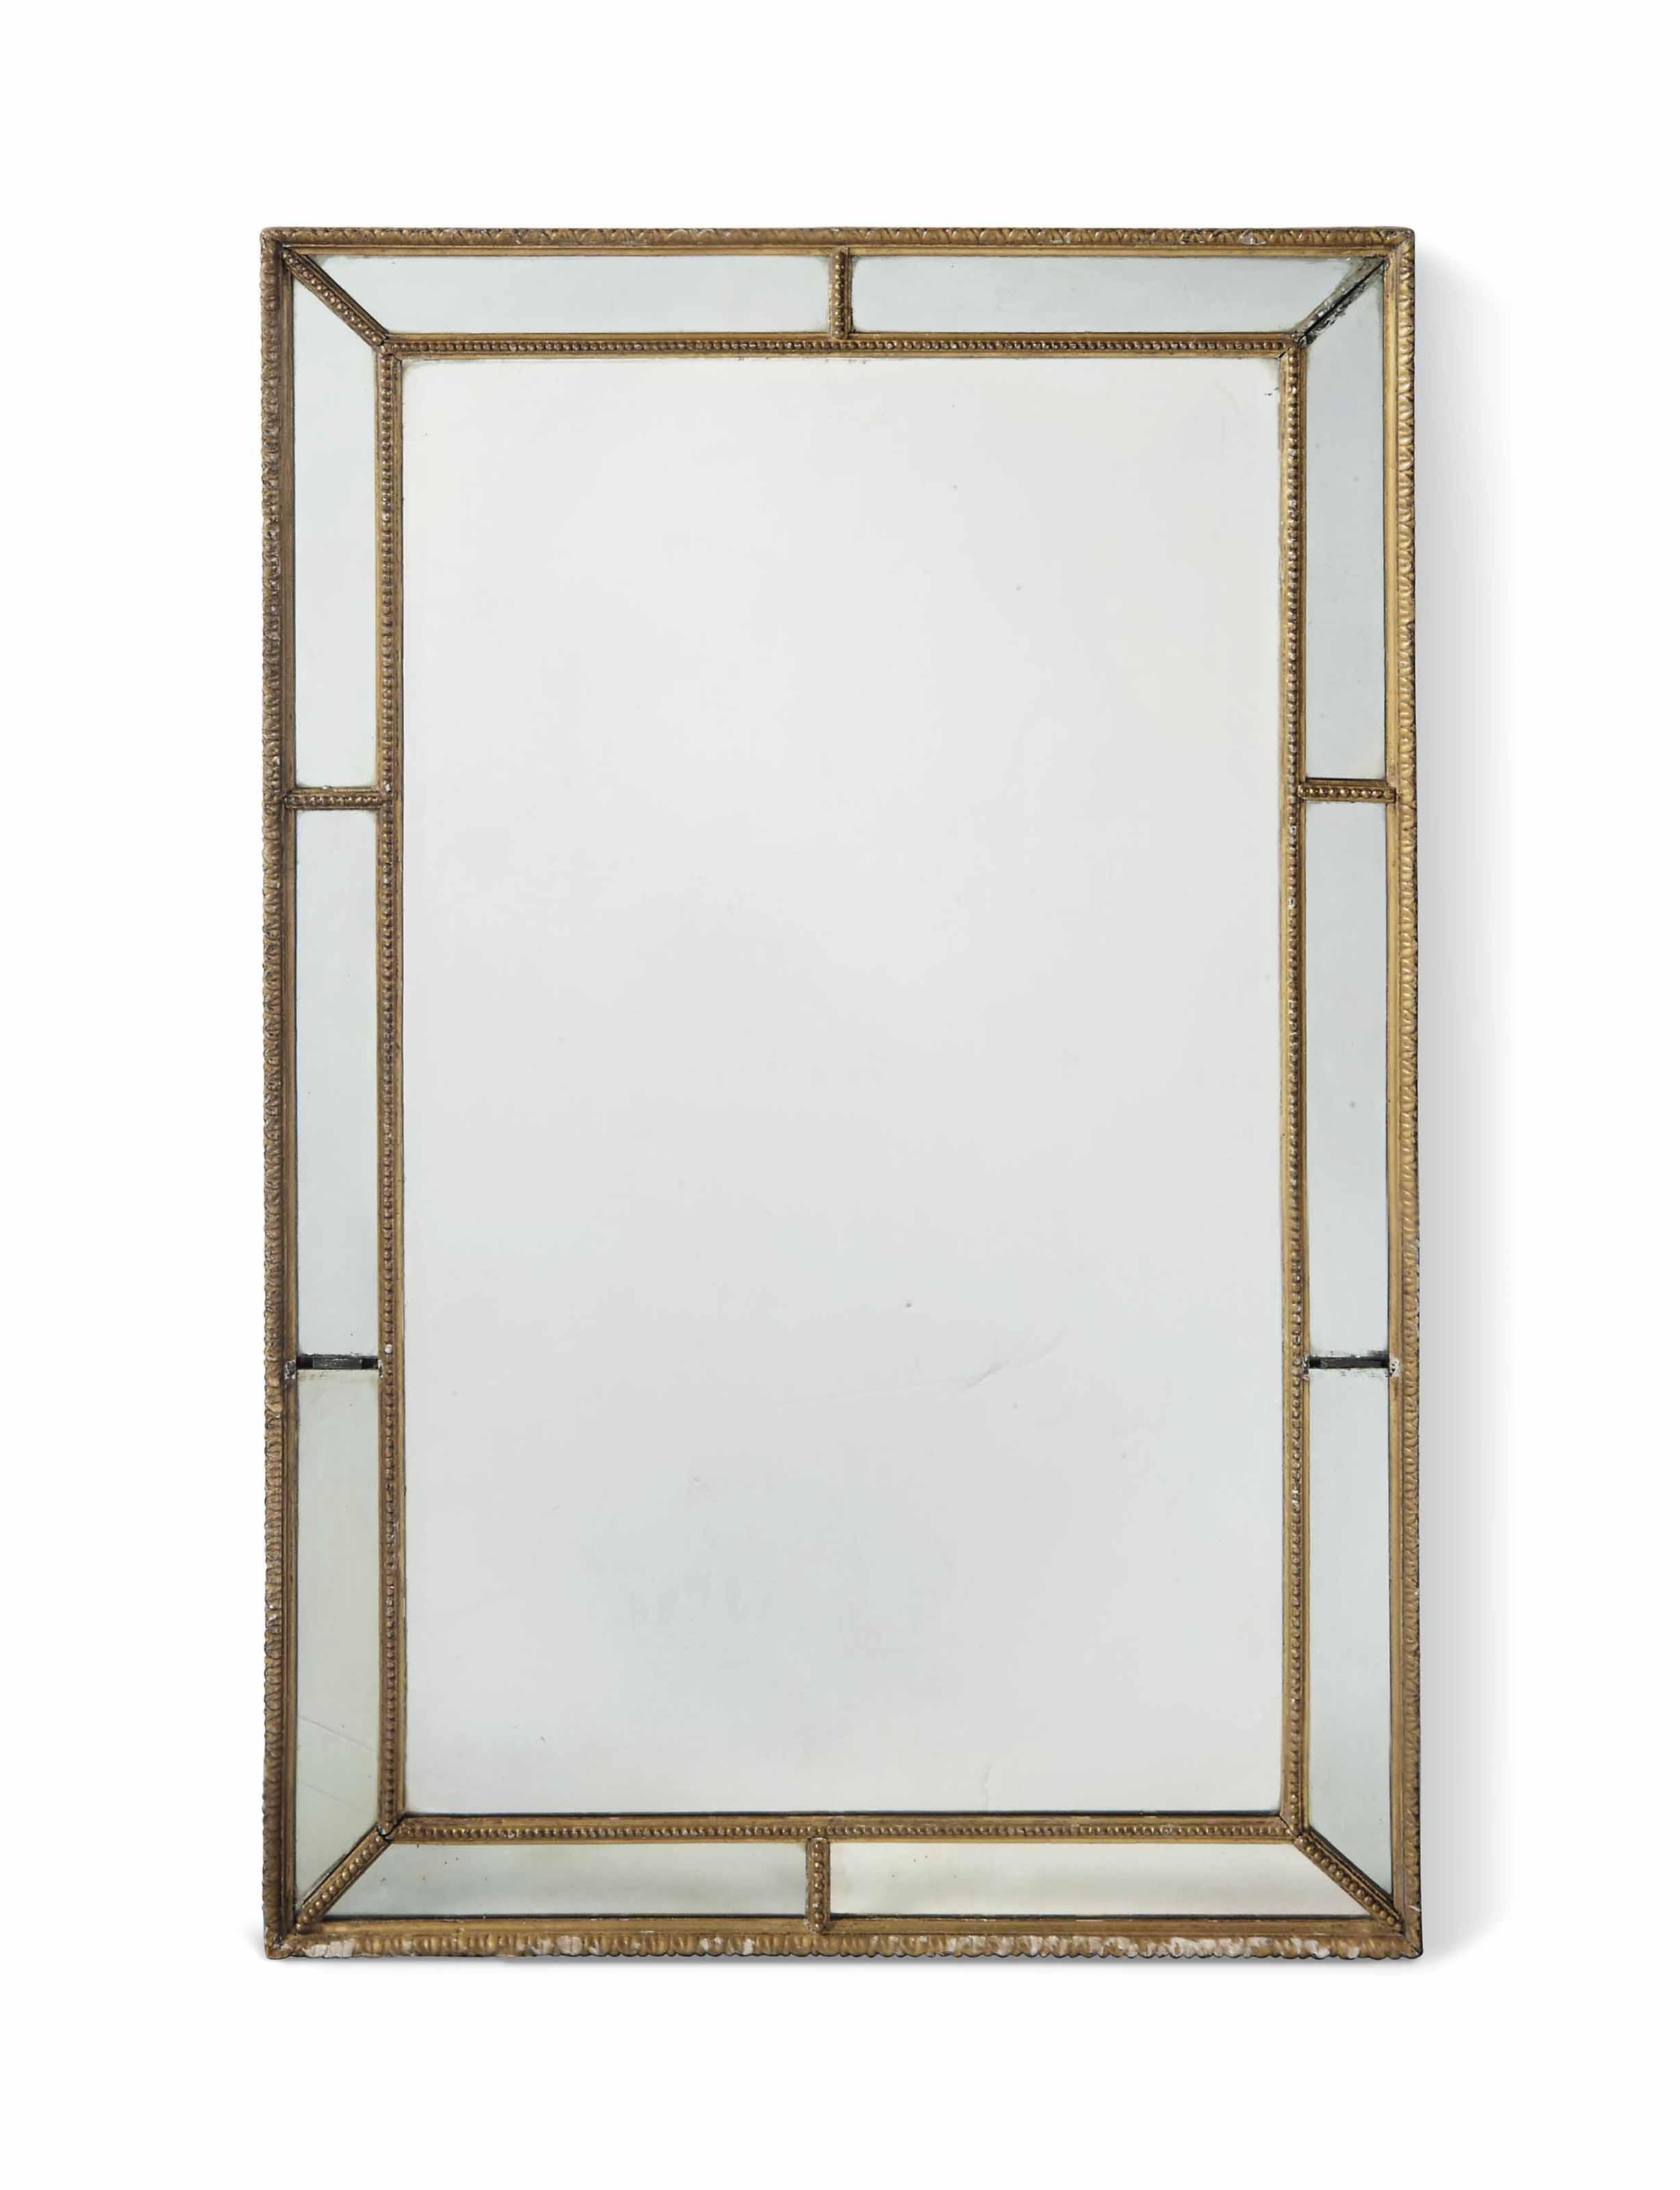 A GILTWOOD RECTANGULAR MARGINA